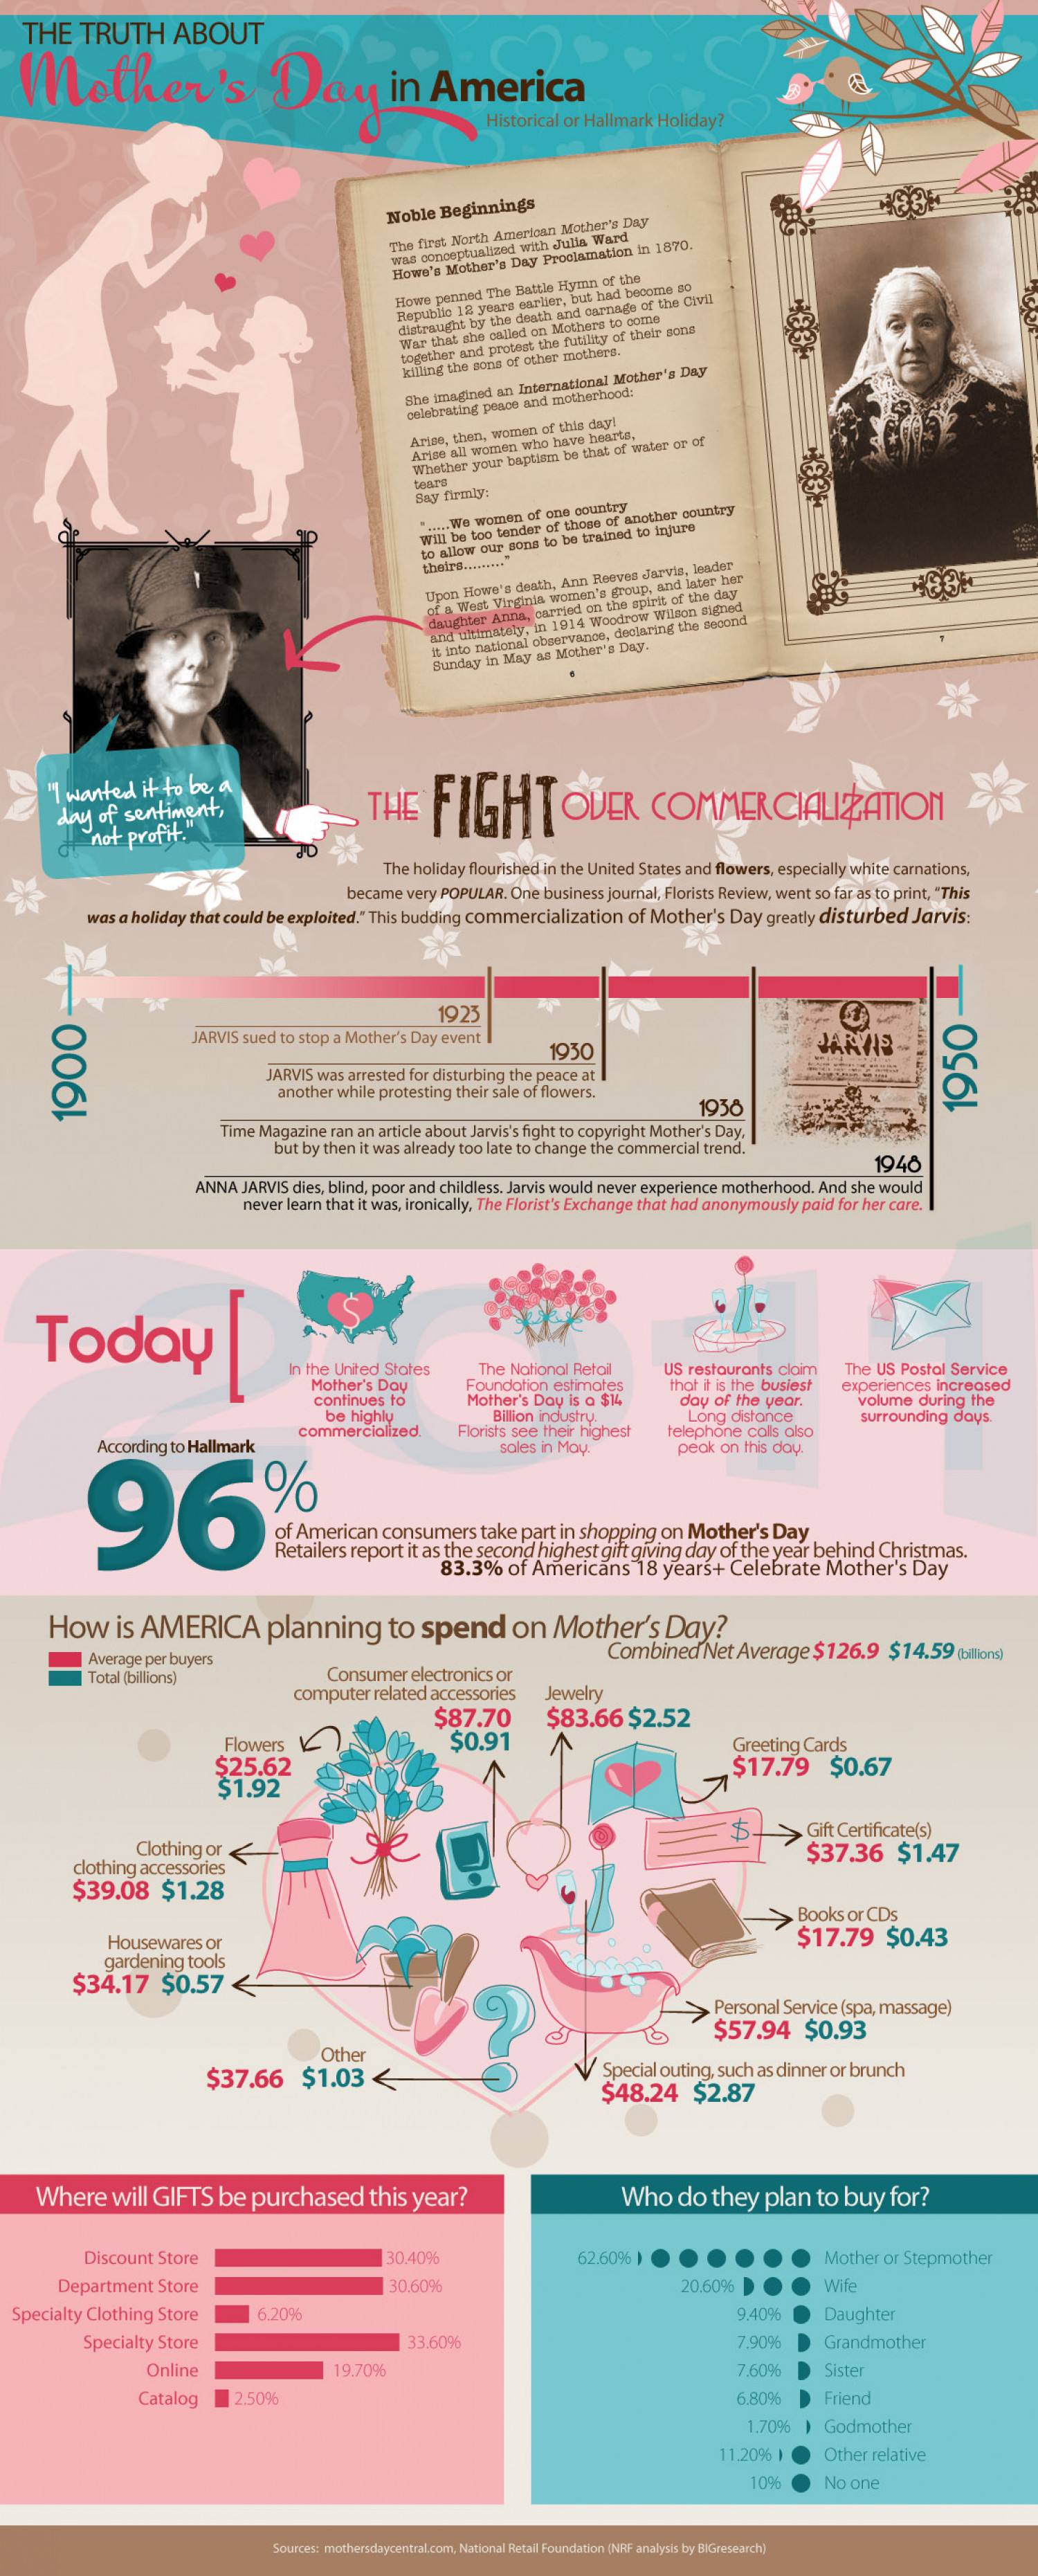 The Truth About Mother's Day in America Infographic